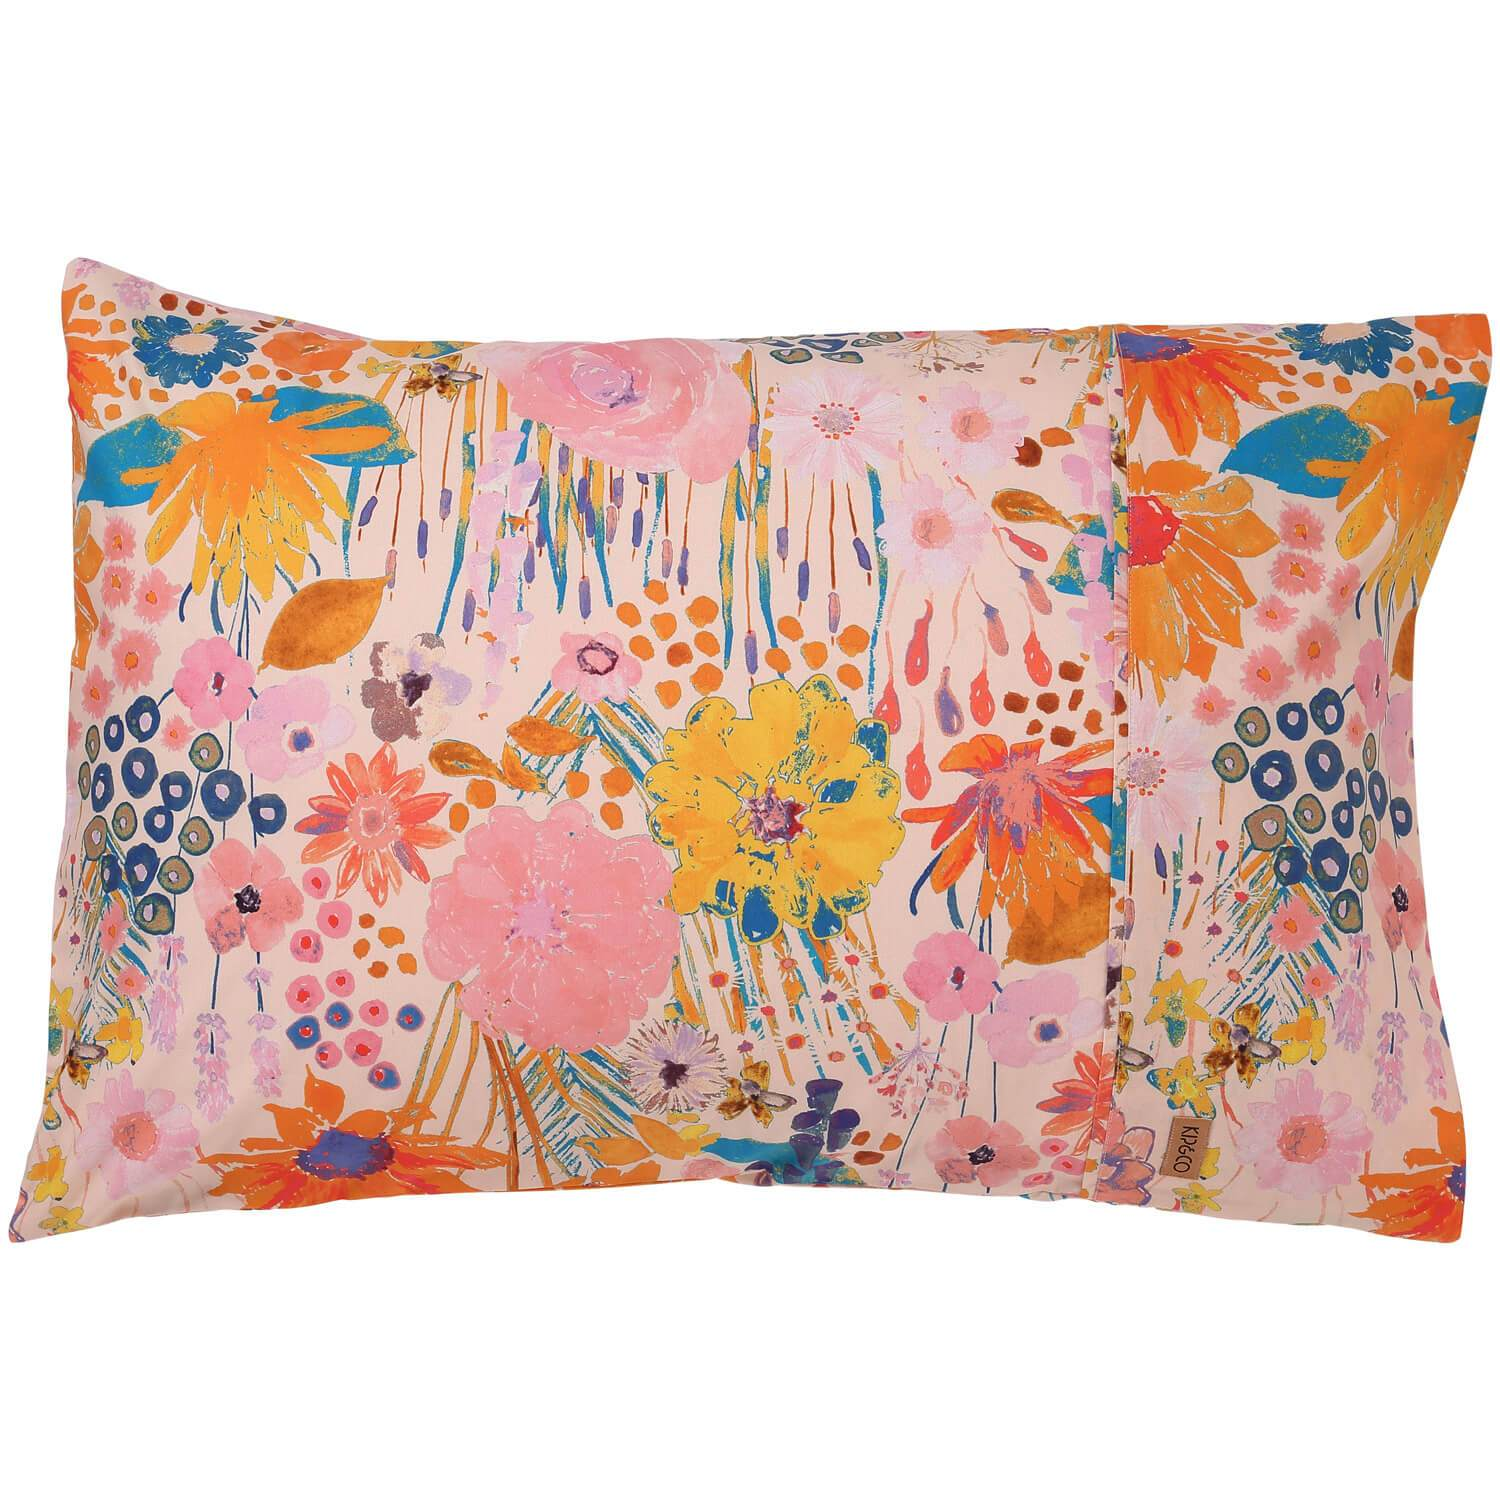 KIP AND CO PINKY FIELD OF DREAMS PILLOWCASE |THE HOME MAVEN